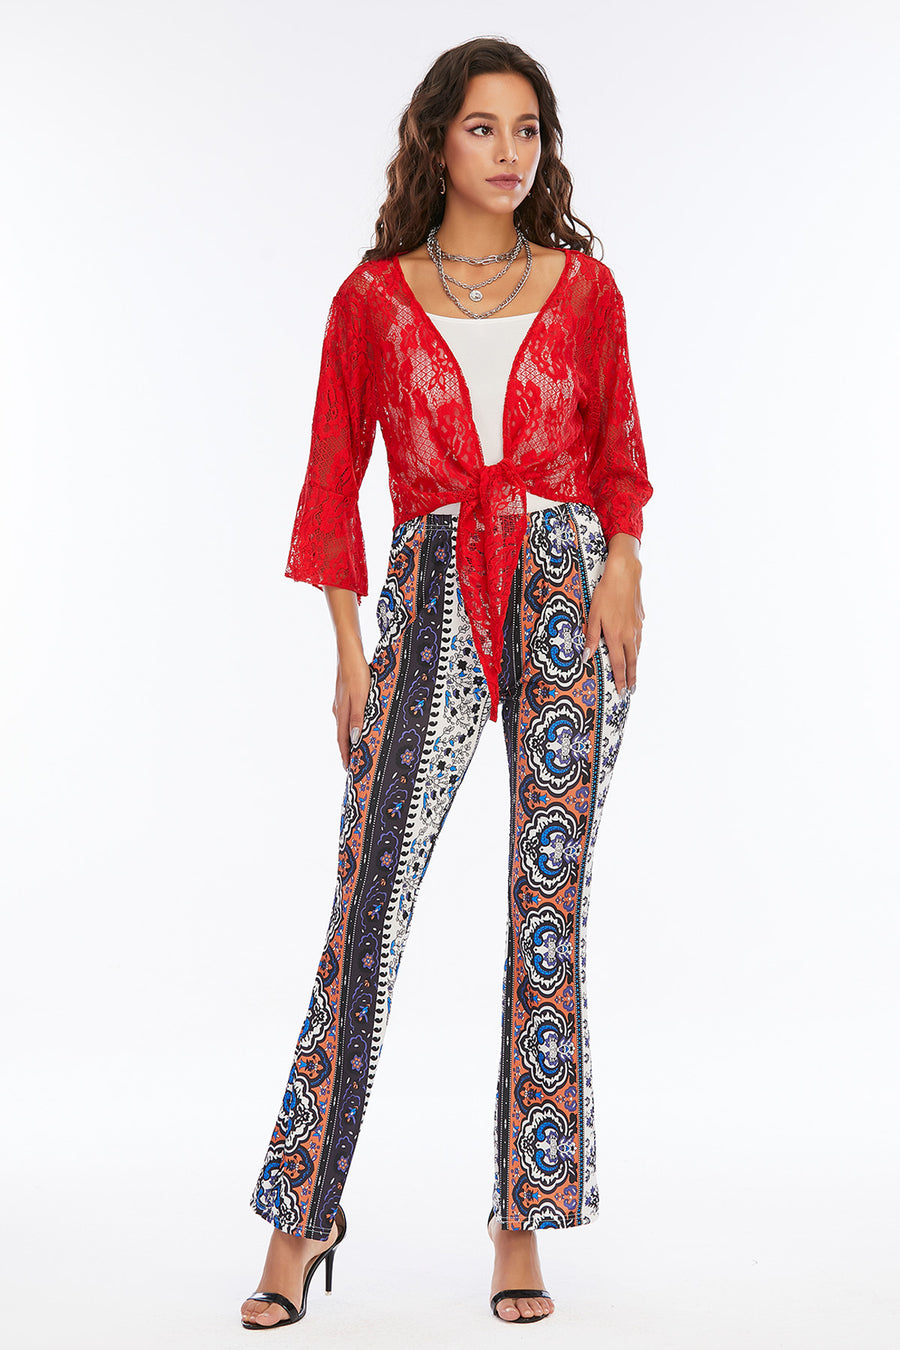 Mantra Pakistan Red Lace Shrug | Western Wear